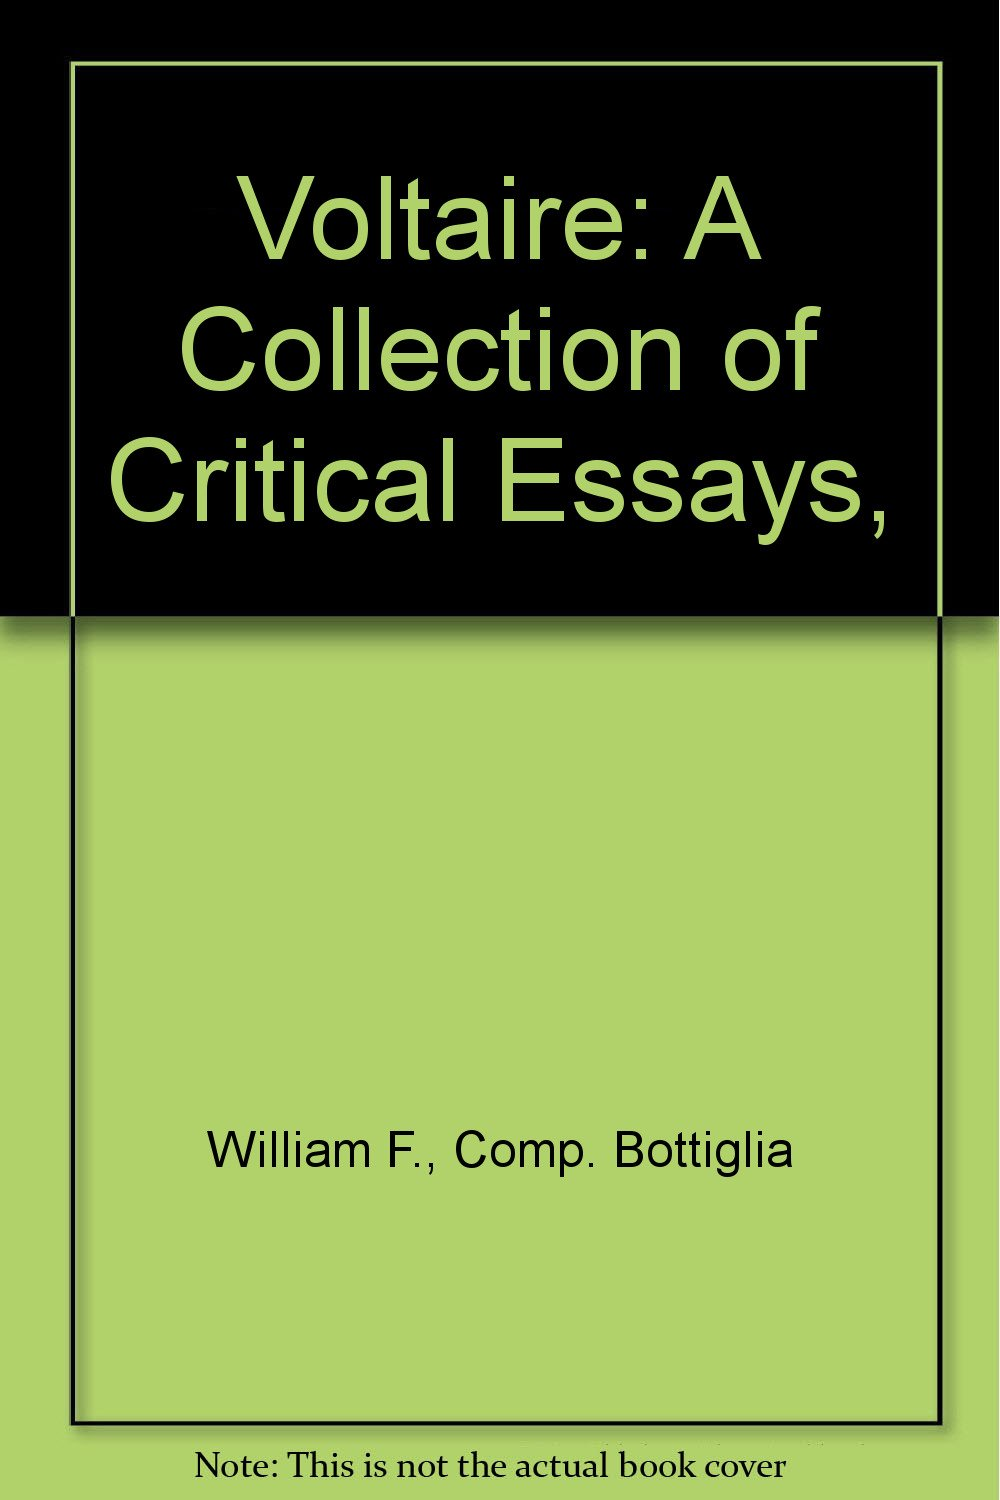 voltaire a collection of critical essays